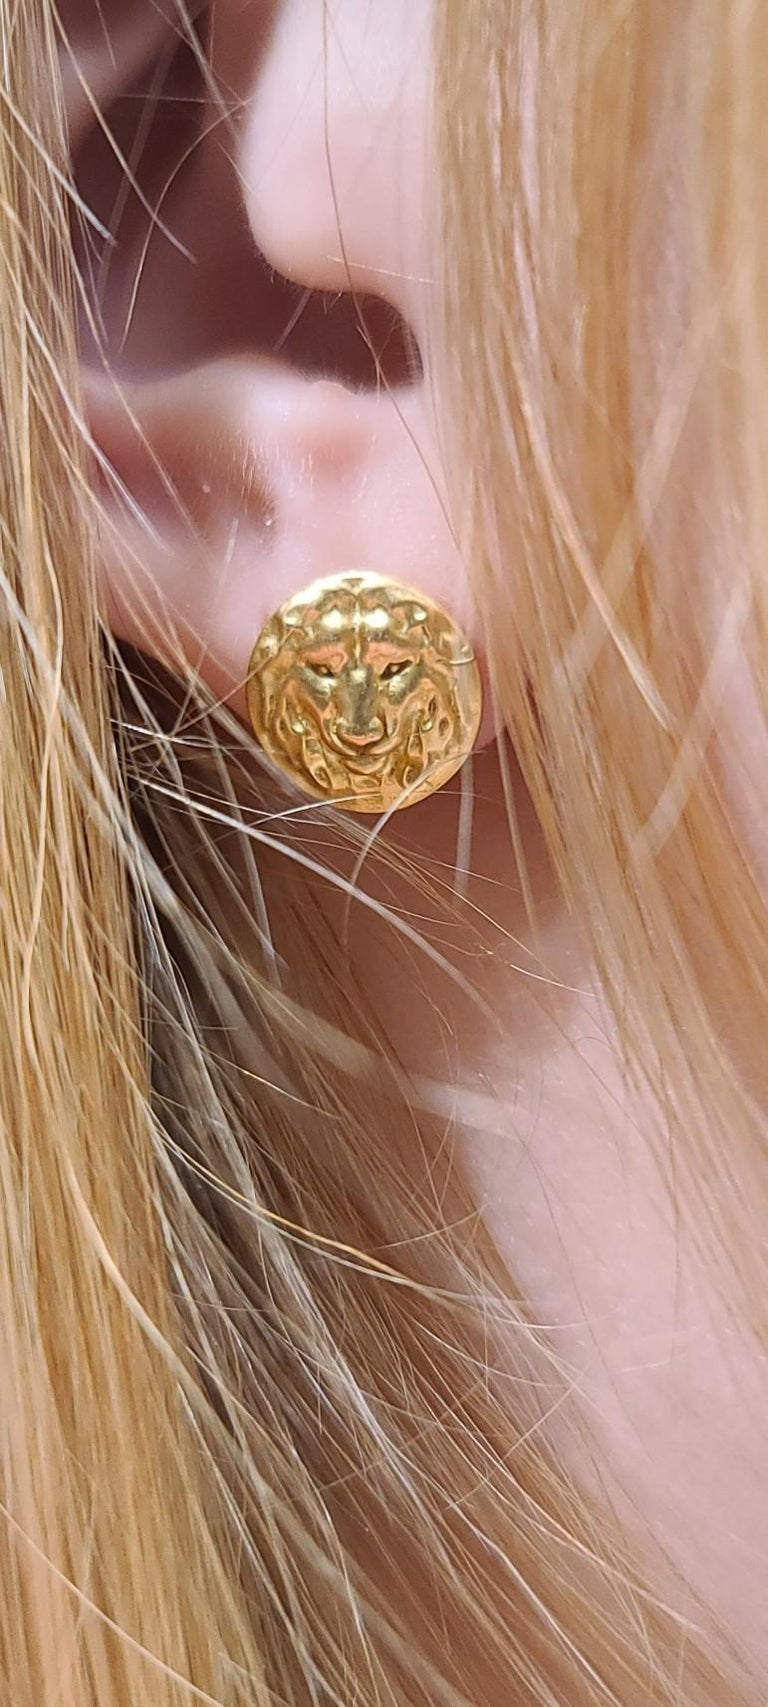 18 Karat Green Gold Lion Stud Earrings, The new king of the jungle made especially for the ears now! Absolutely fearless.  Can you hear the roar? It's so close to your ear now , I bet you could. Who does not want to go on a safari?  Polished. 11.5